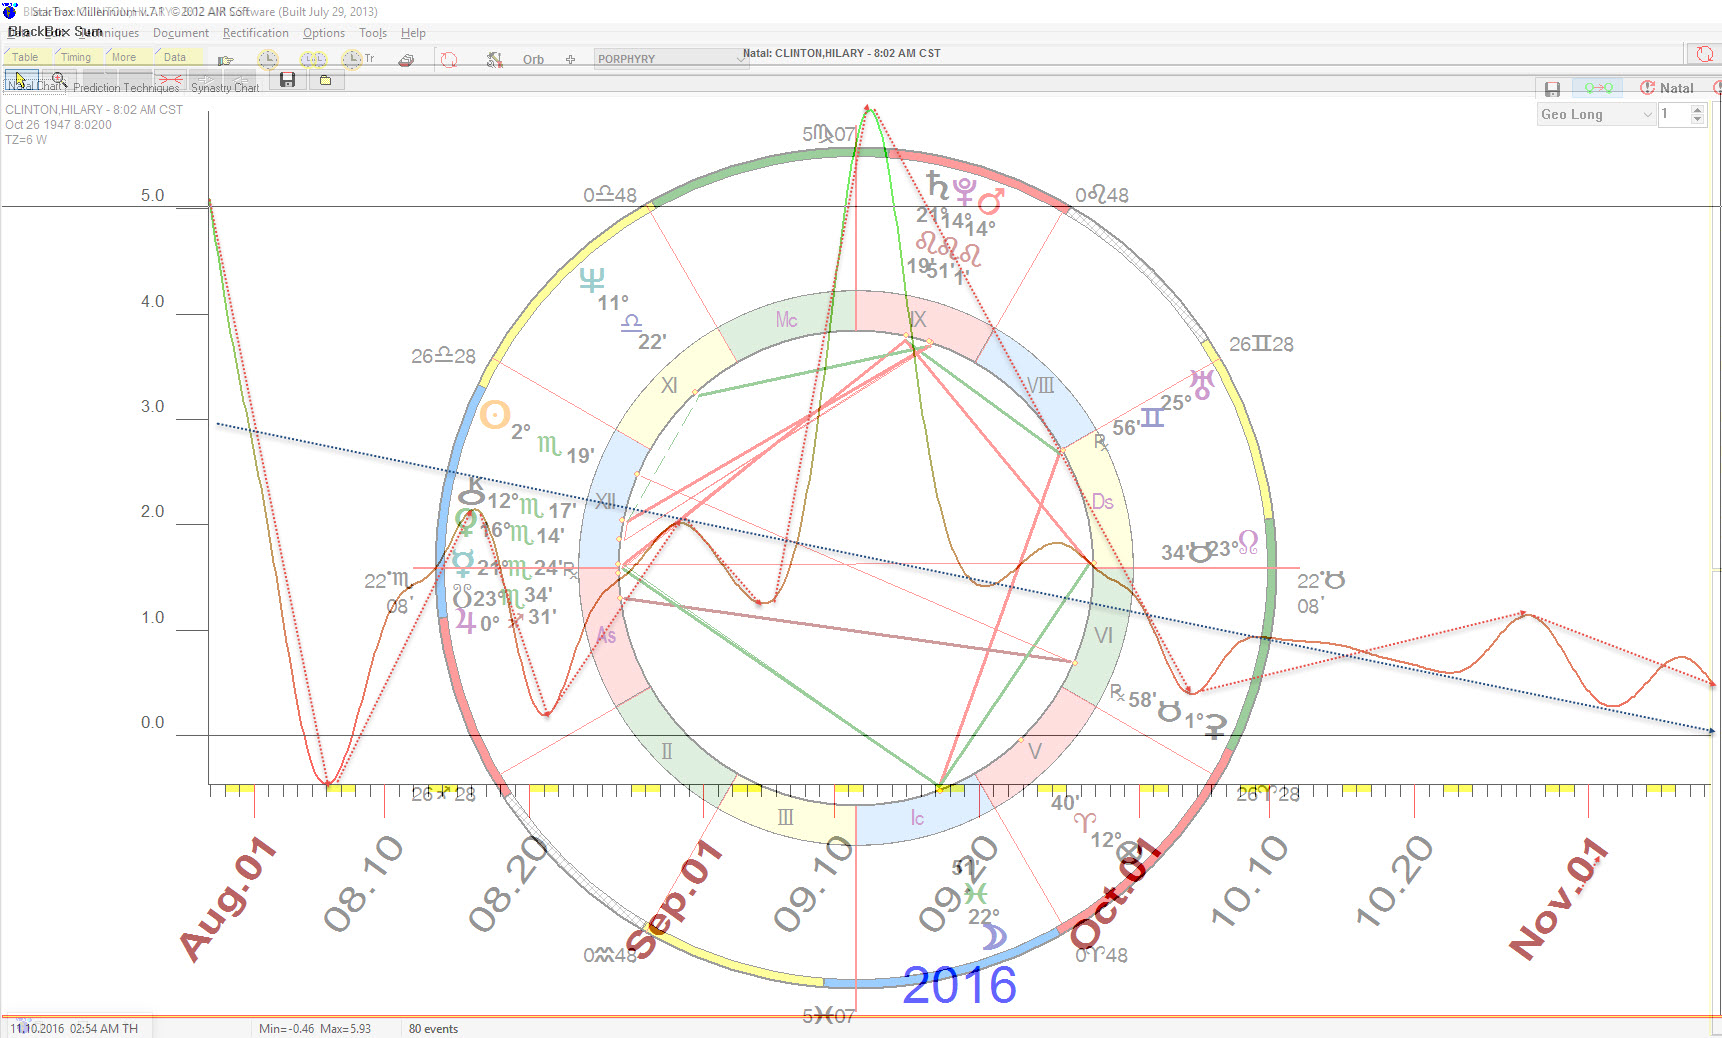 Astrology and politics 2016 us presidential general election blackbox career forecast for hillary clinton 802am birth time copyright william nvjuhfo Choice Image